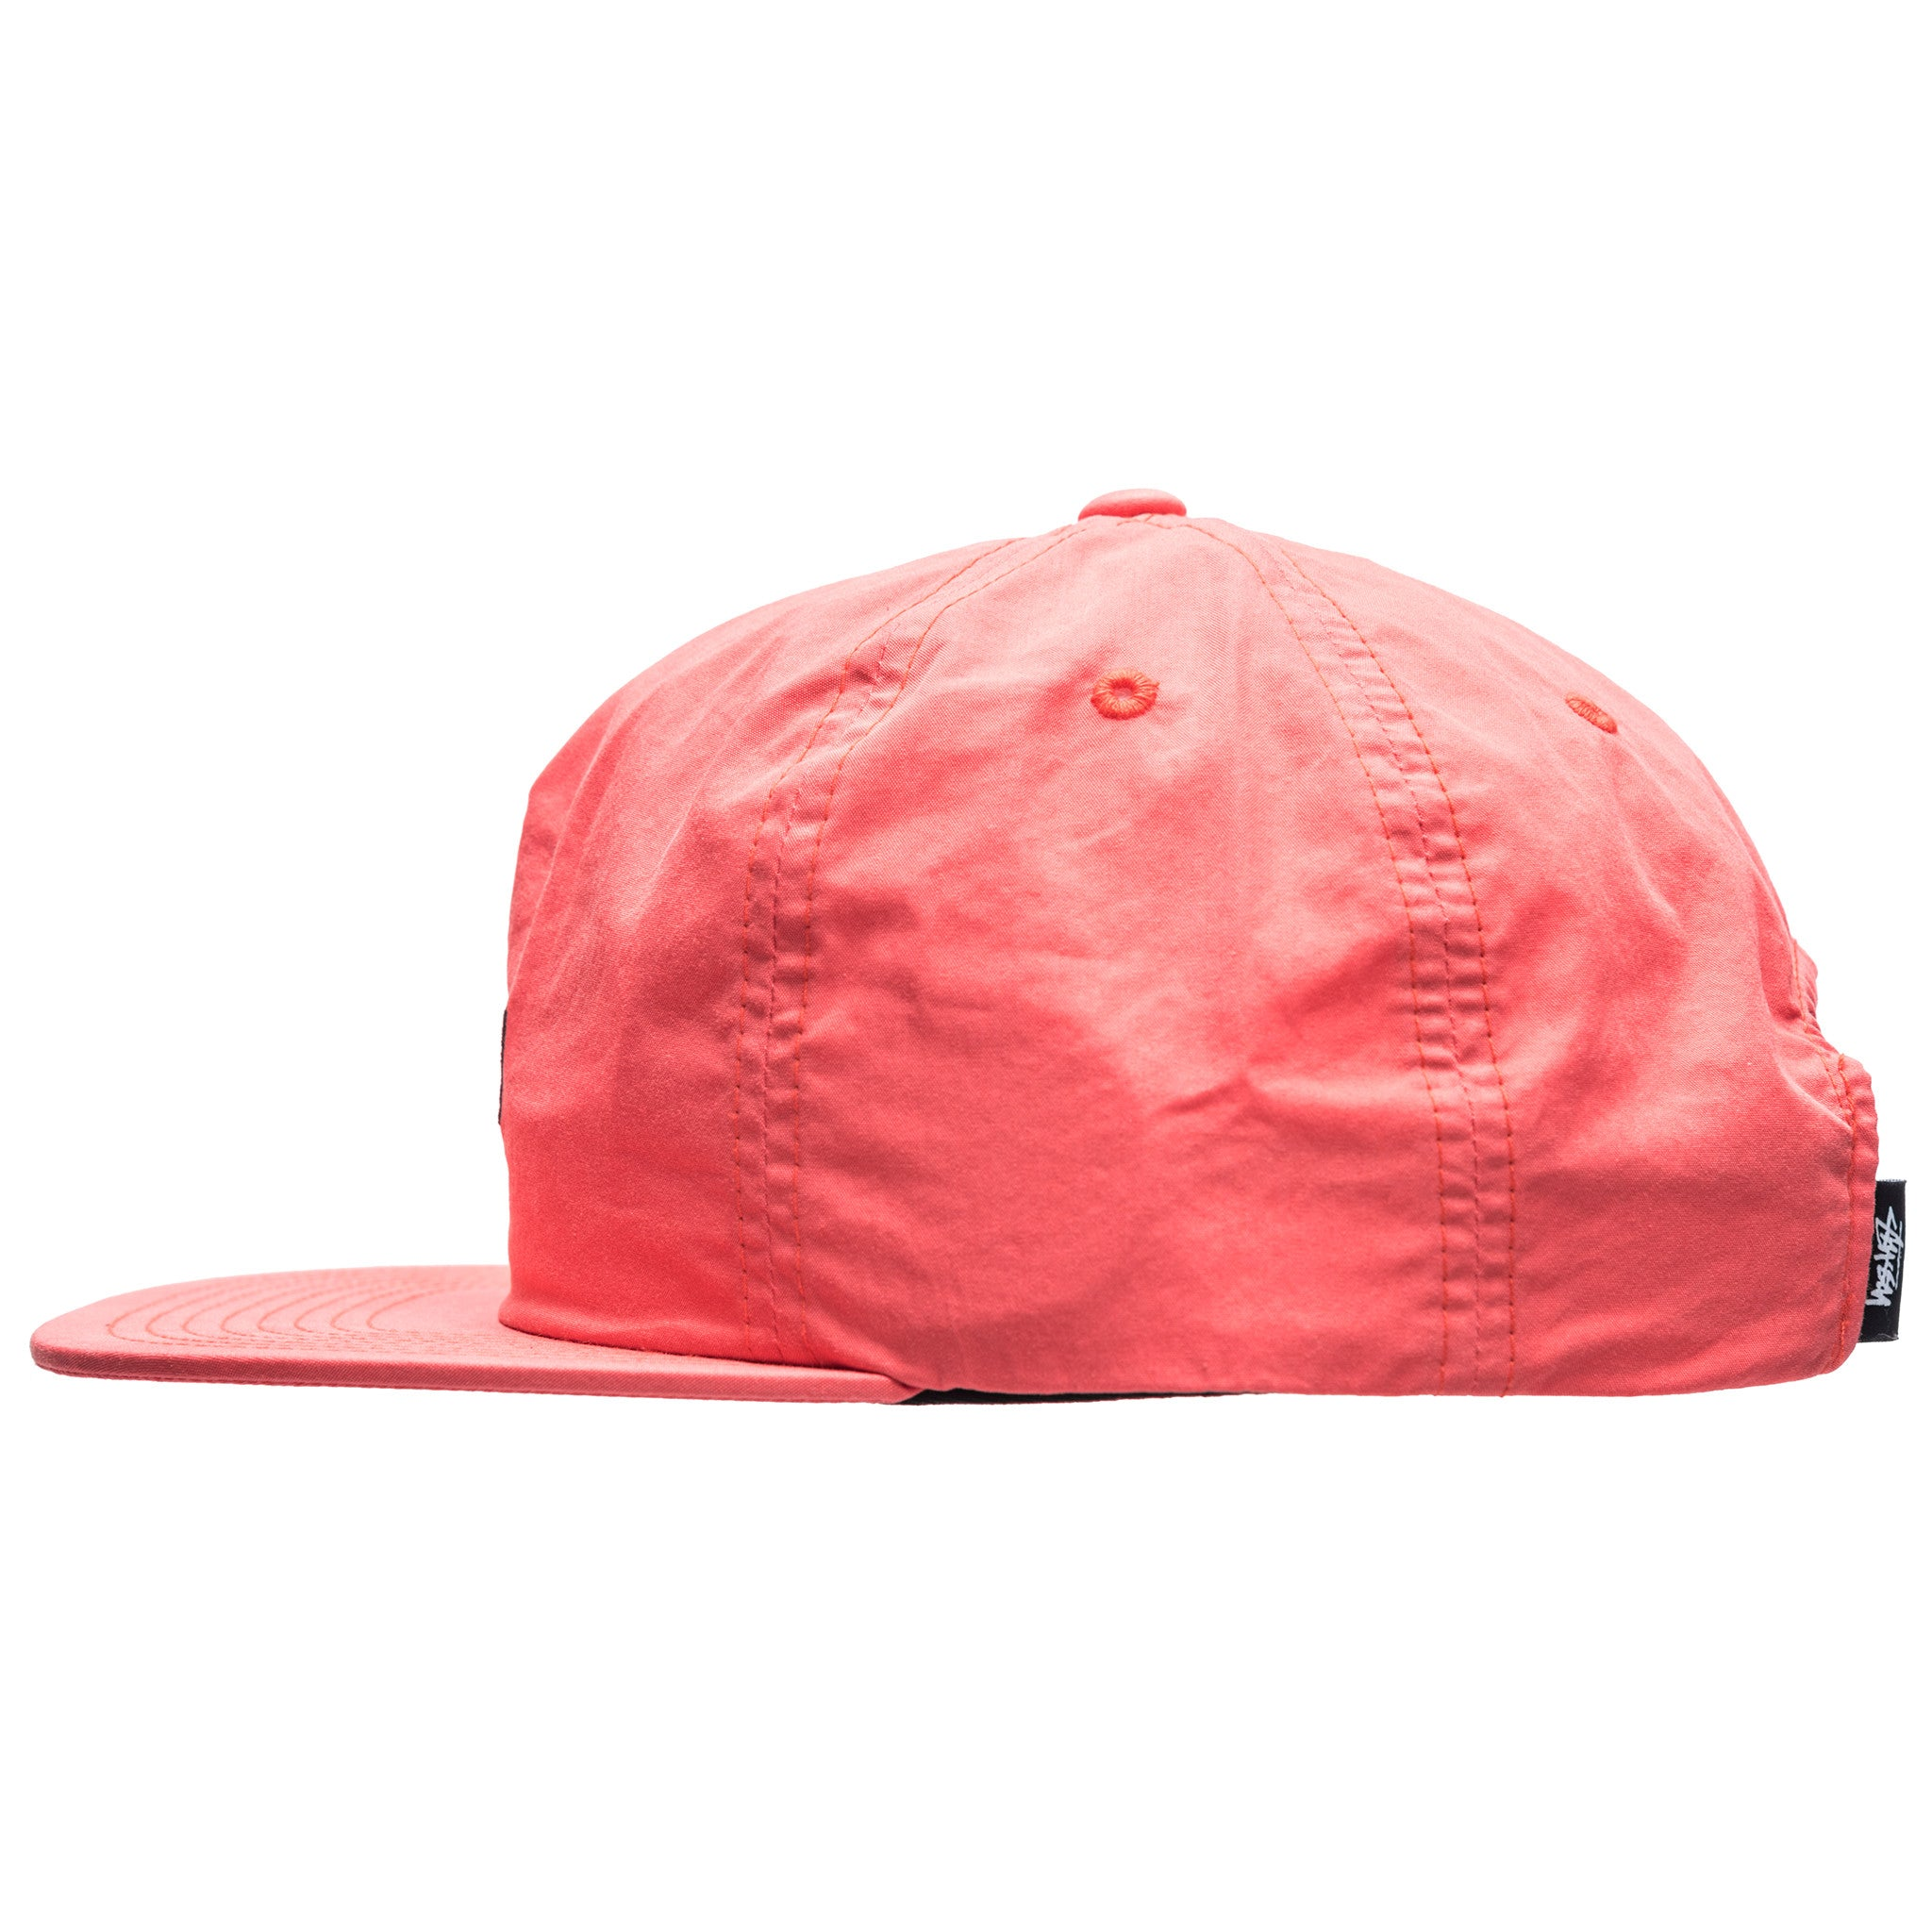 Washed Nylon Strapback Cap